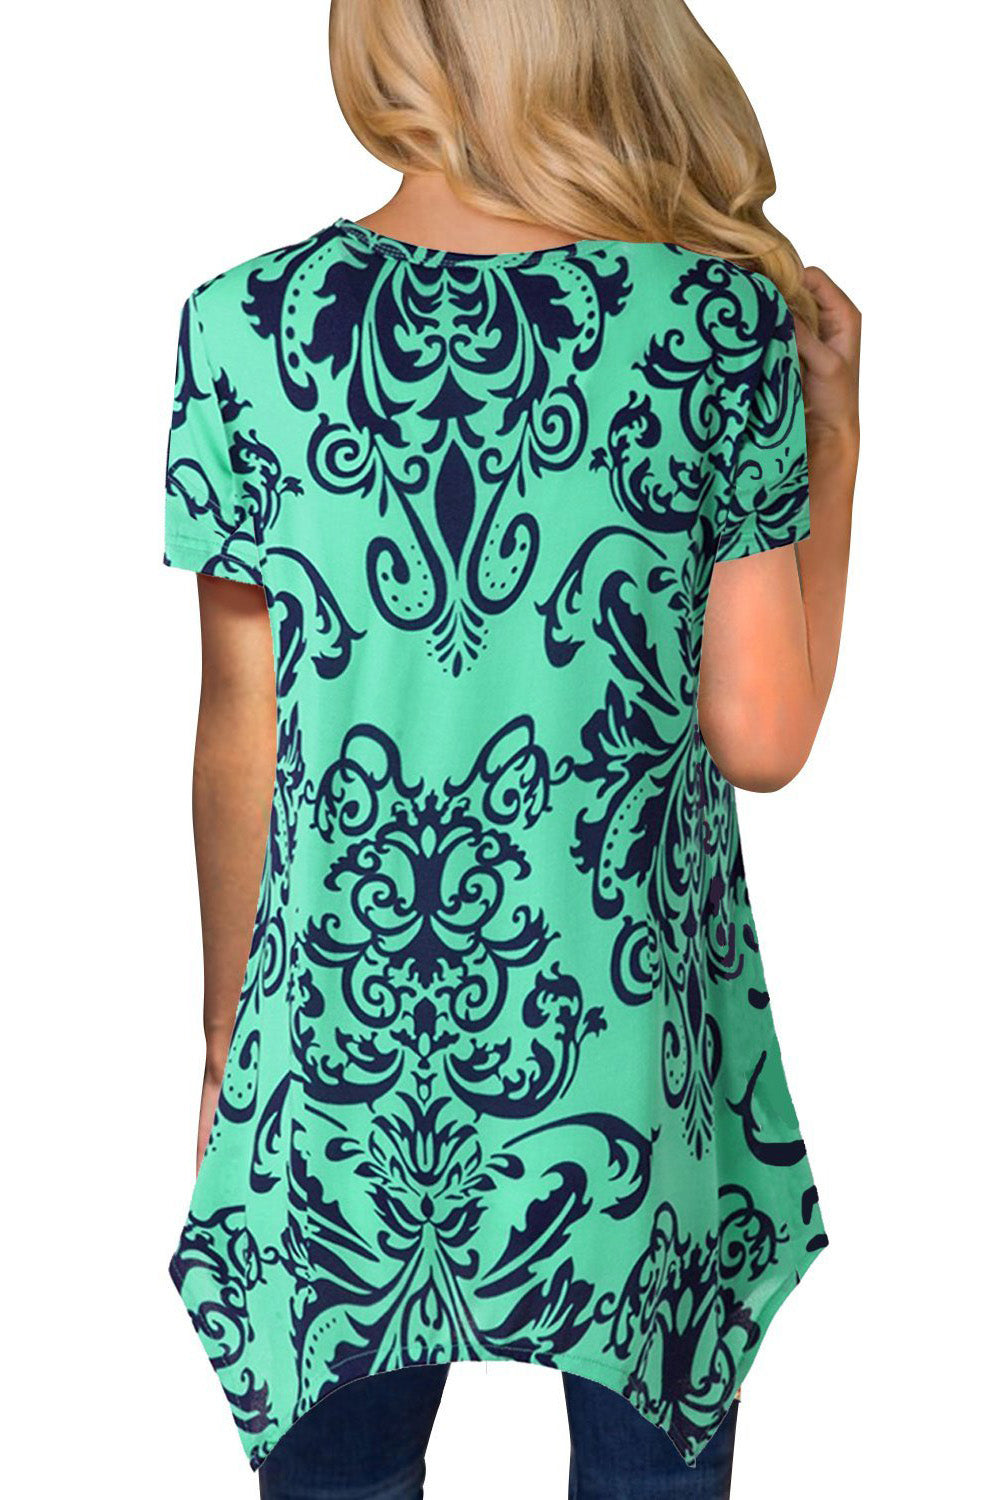 Mint Damask Print Irregular Hem Short Sleeve Blouse